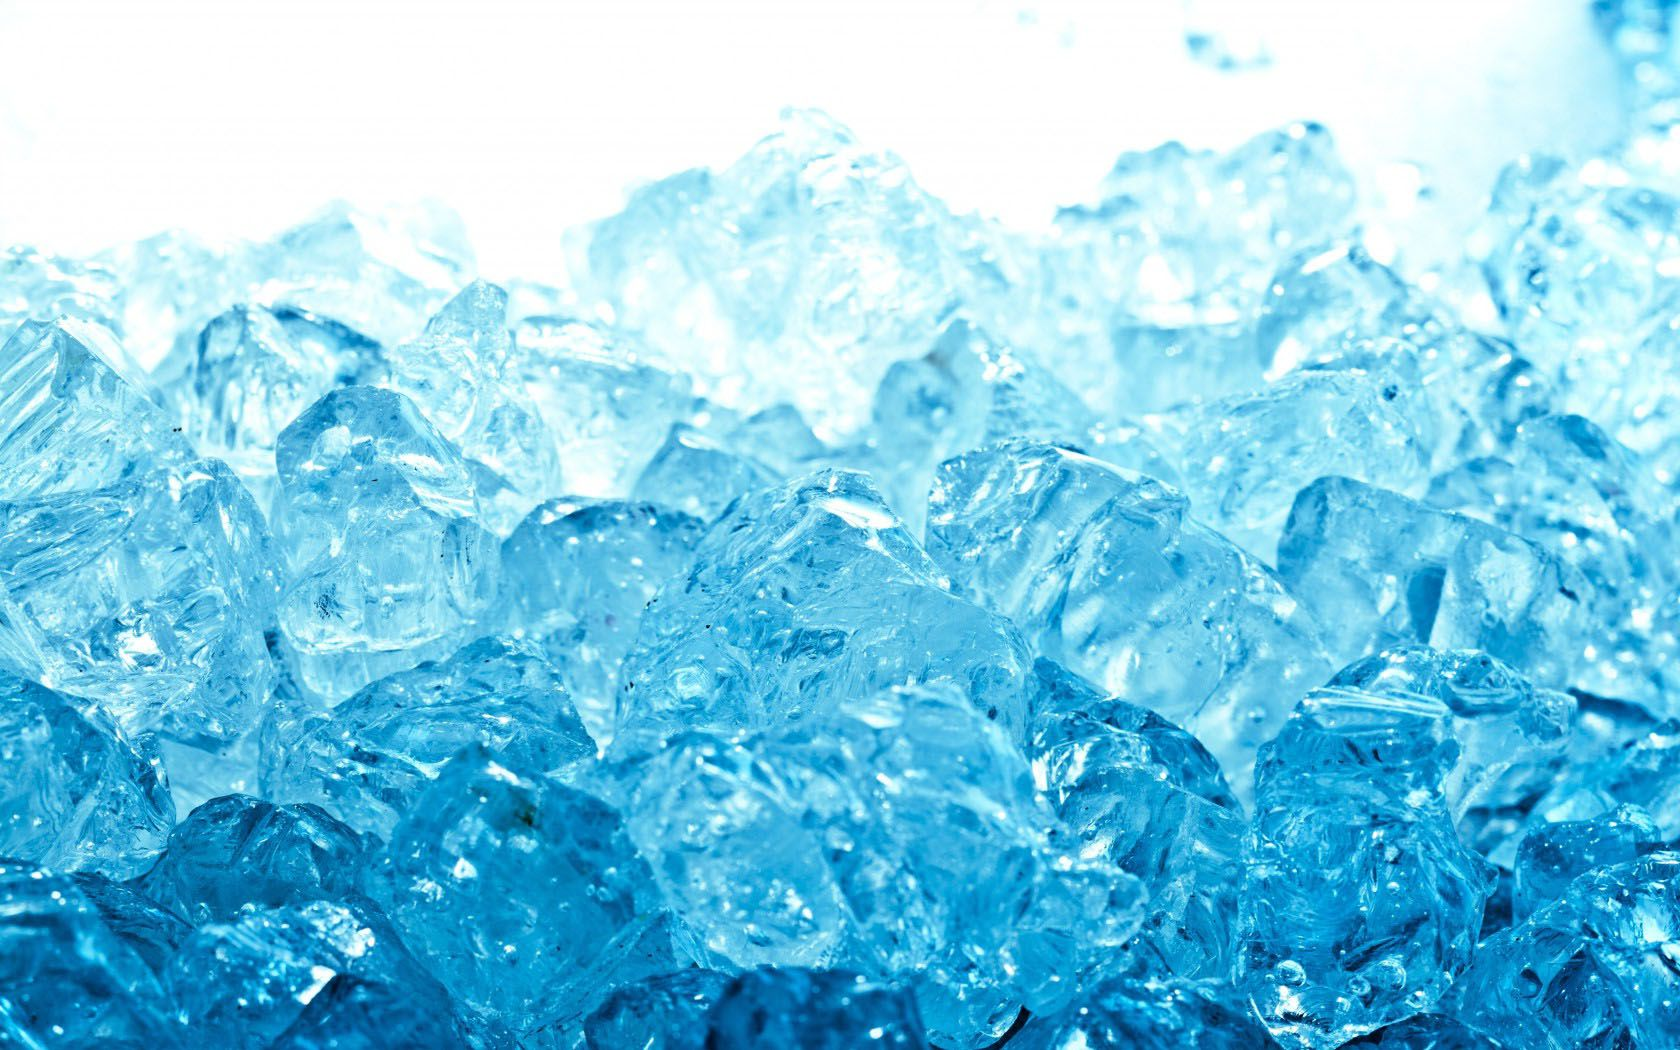 Blue Ice Wallpaper Ice Texture Ice Images Ice Png